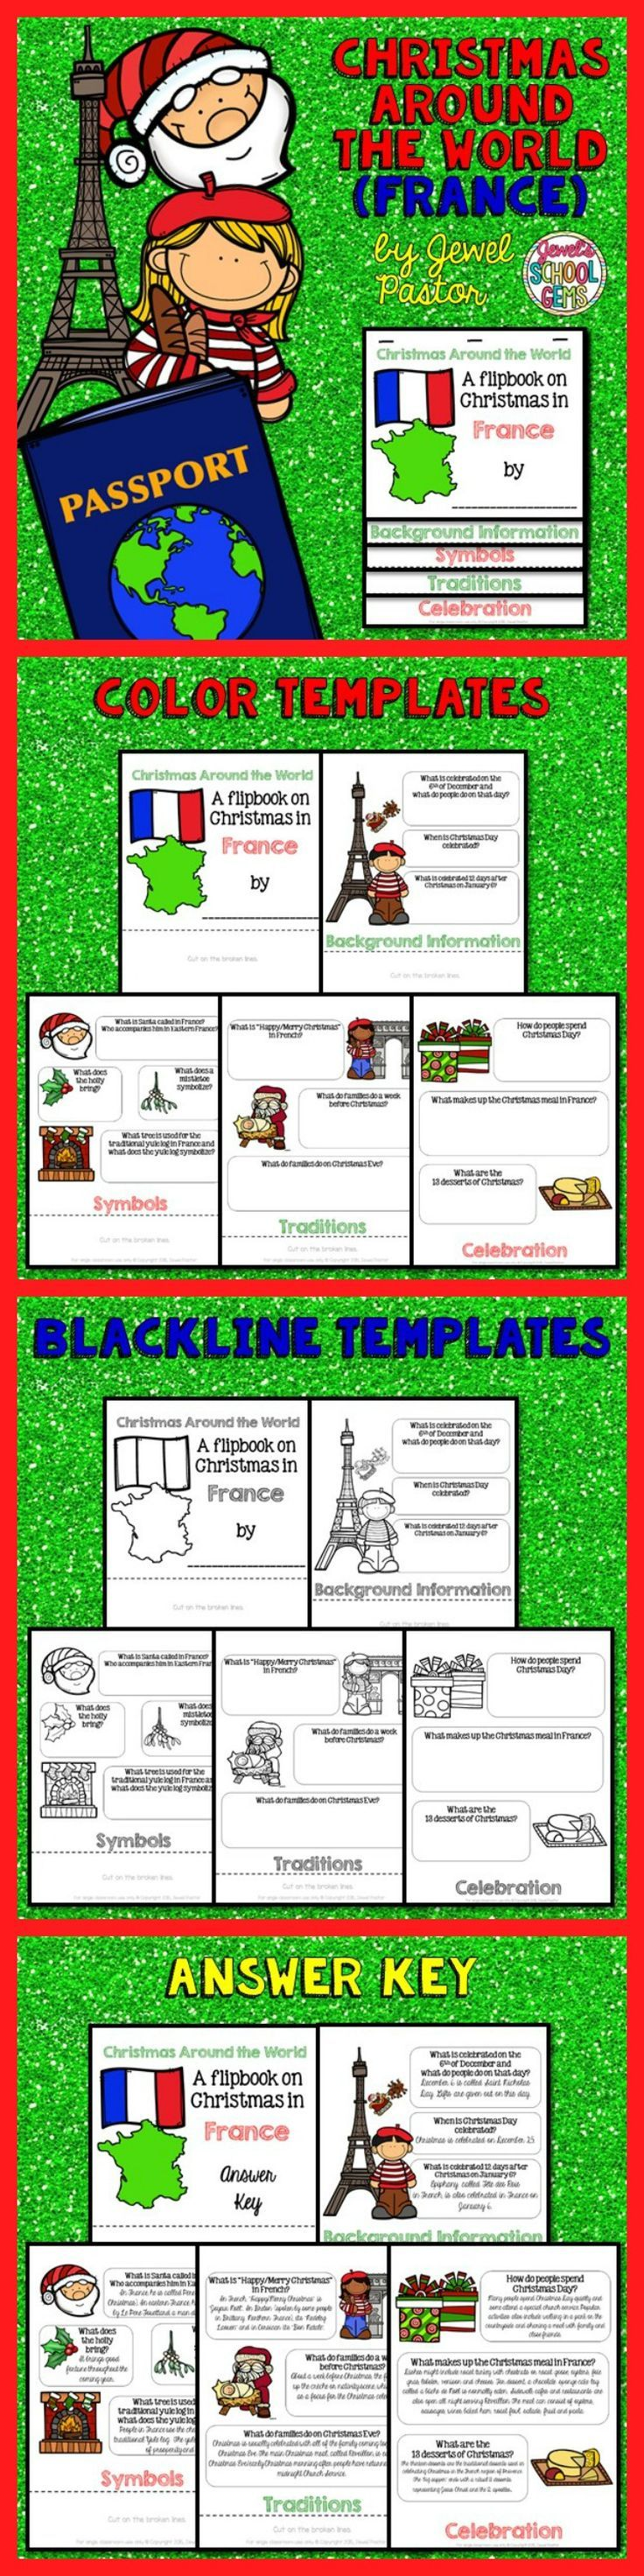 """CHRISTMAS AROUND THE WORLD (FRANCE)  Engage your students with this Christmas Around the World Activity: """"A Research Flipbook on Christmas in France"""".  This resource contains: *5 pages of color templates *5 pages of black and white templates *5 pages with answers to the questions (Answer Key)  Children will learn about Christmas traditions and celebrations in France in a fun and interactive way with this flipbook research project!"""